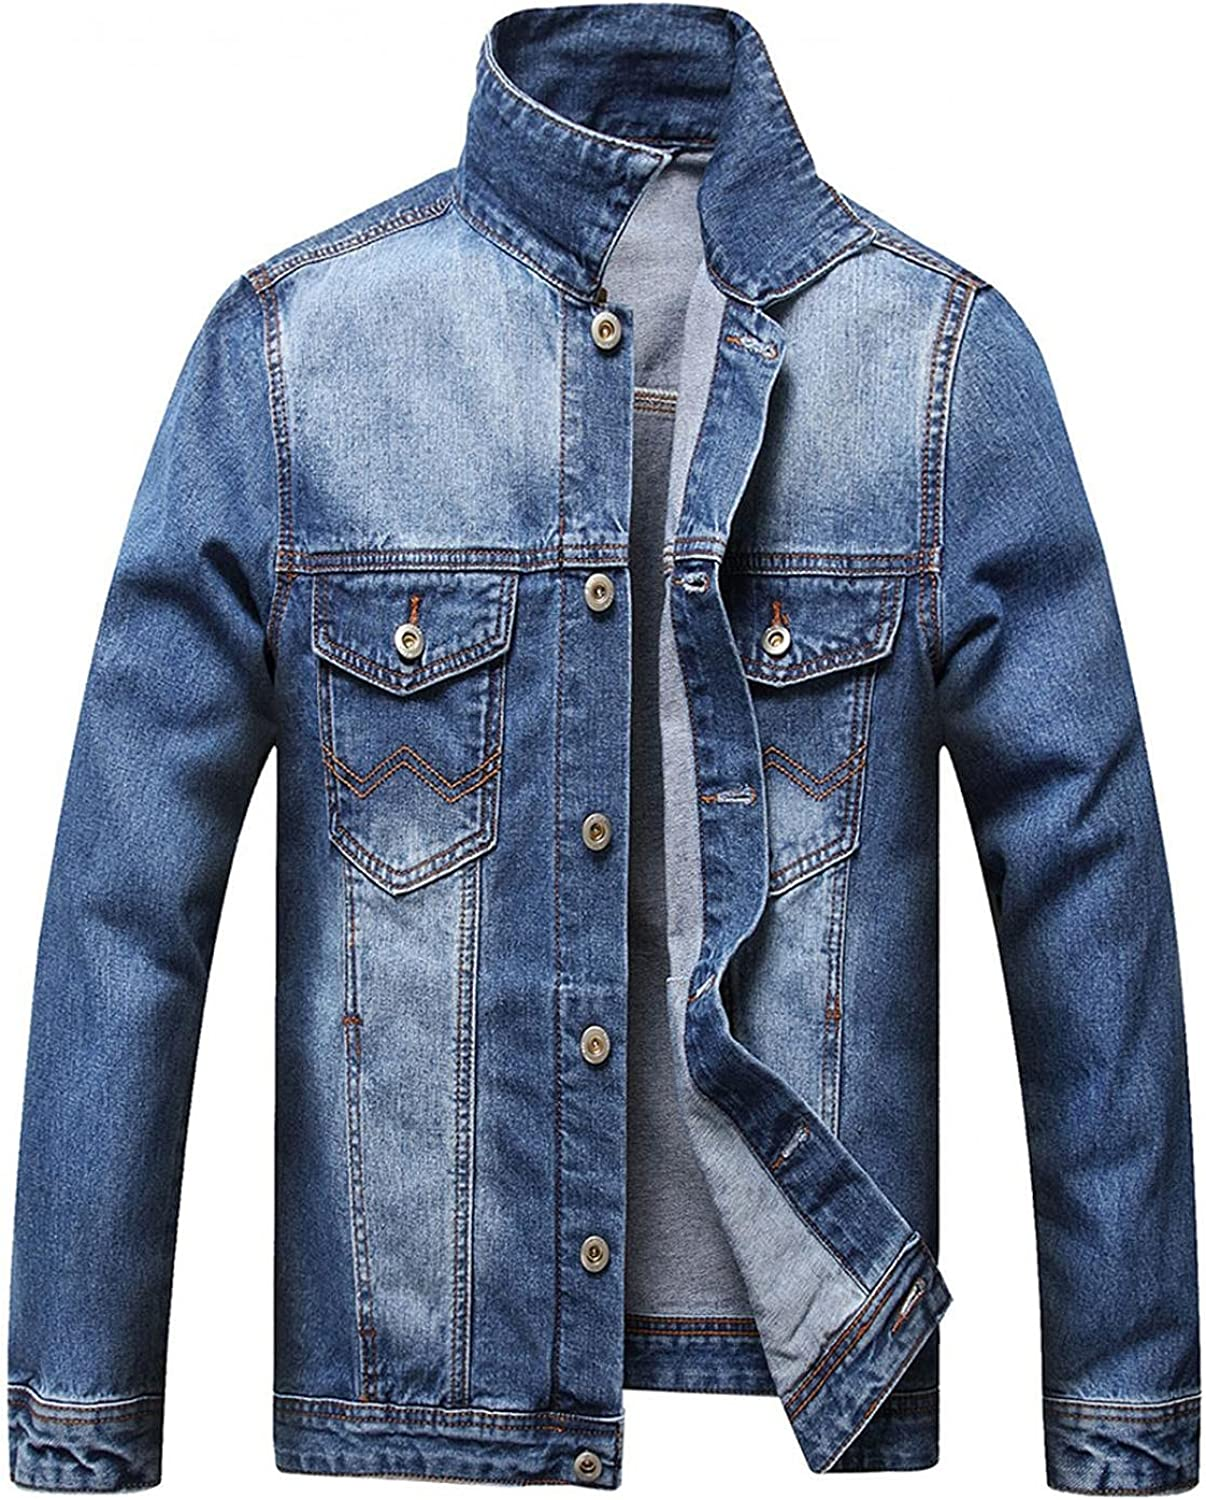 VEKDONE Mens Jean Jacket Casual Vintage Ripped Distressed Denim Slim Fit Jackets Fall Winter Coat Outwear with Holes